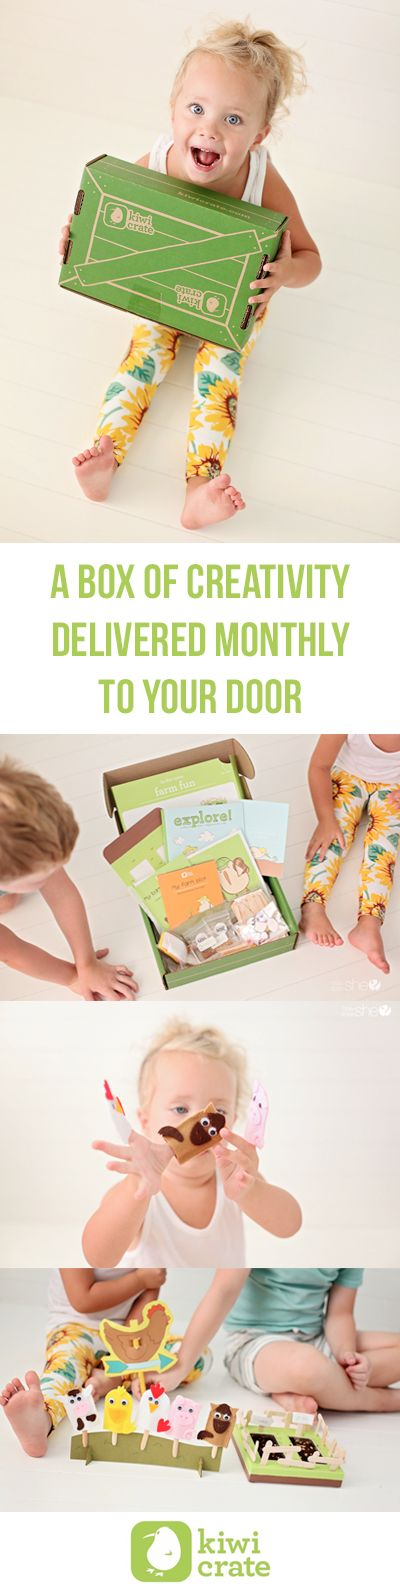 Monthly arts and craft kits for kids delivered to your door with all the supplies you need included. Save 30% on your 1st month with code PINTEREST30! Offer available through October 31, 2015.